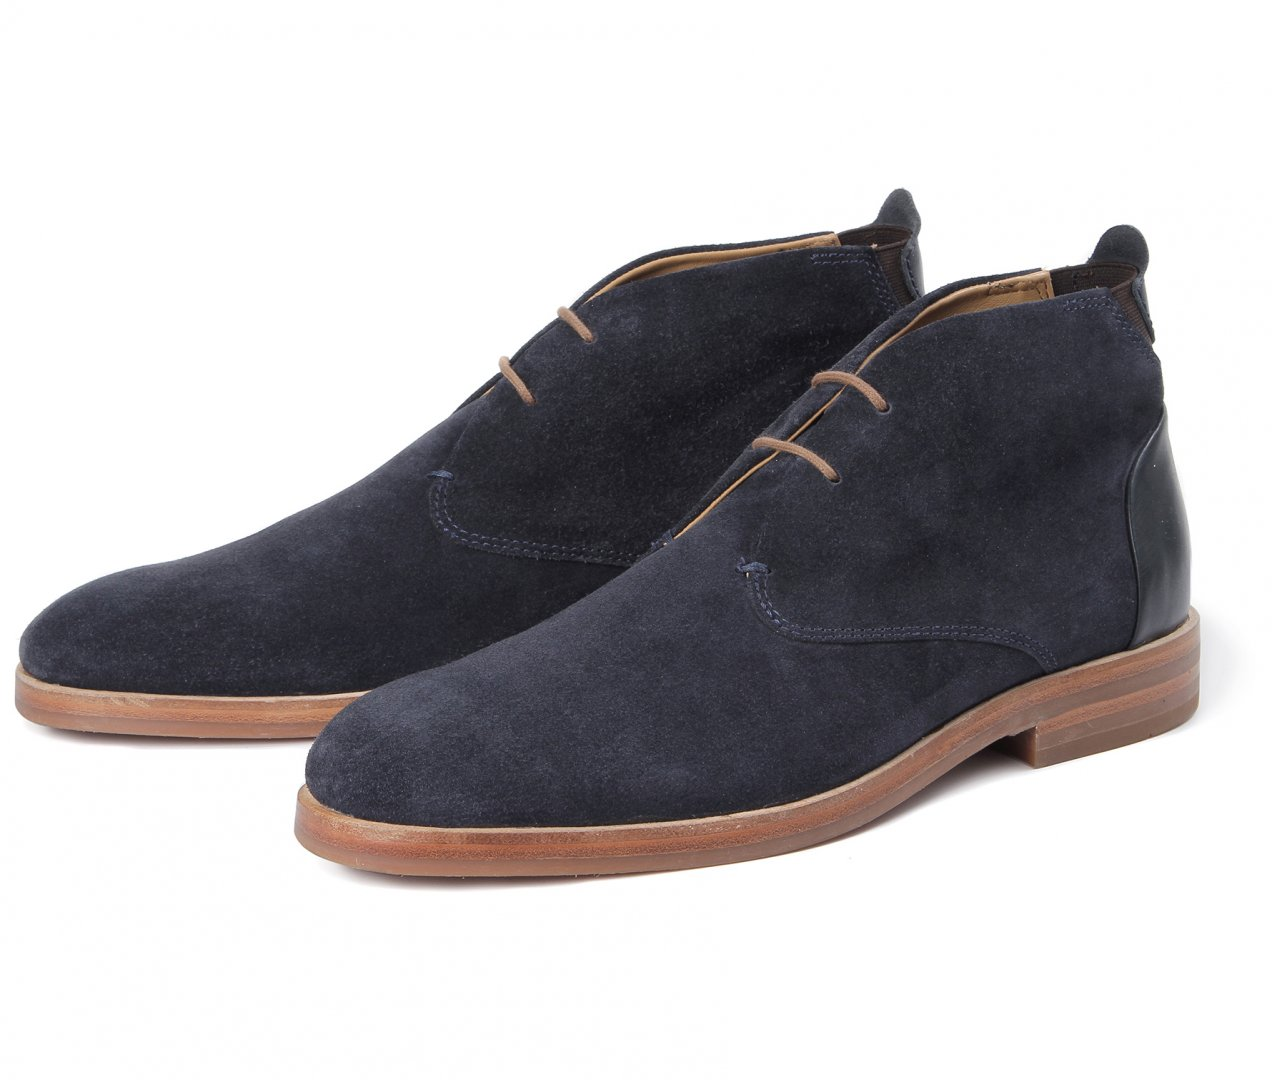 Hudson Shoes Matteo Suede Navy Boot